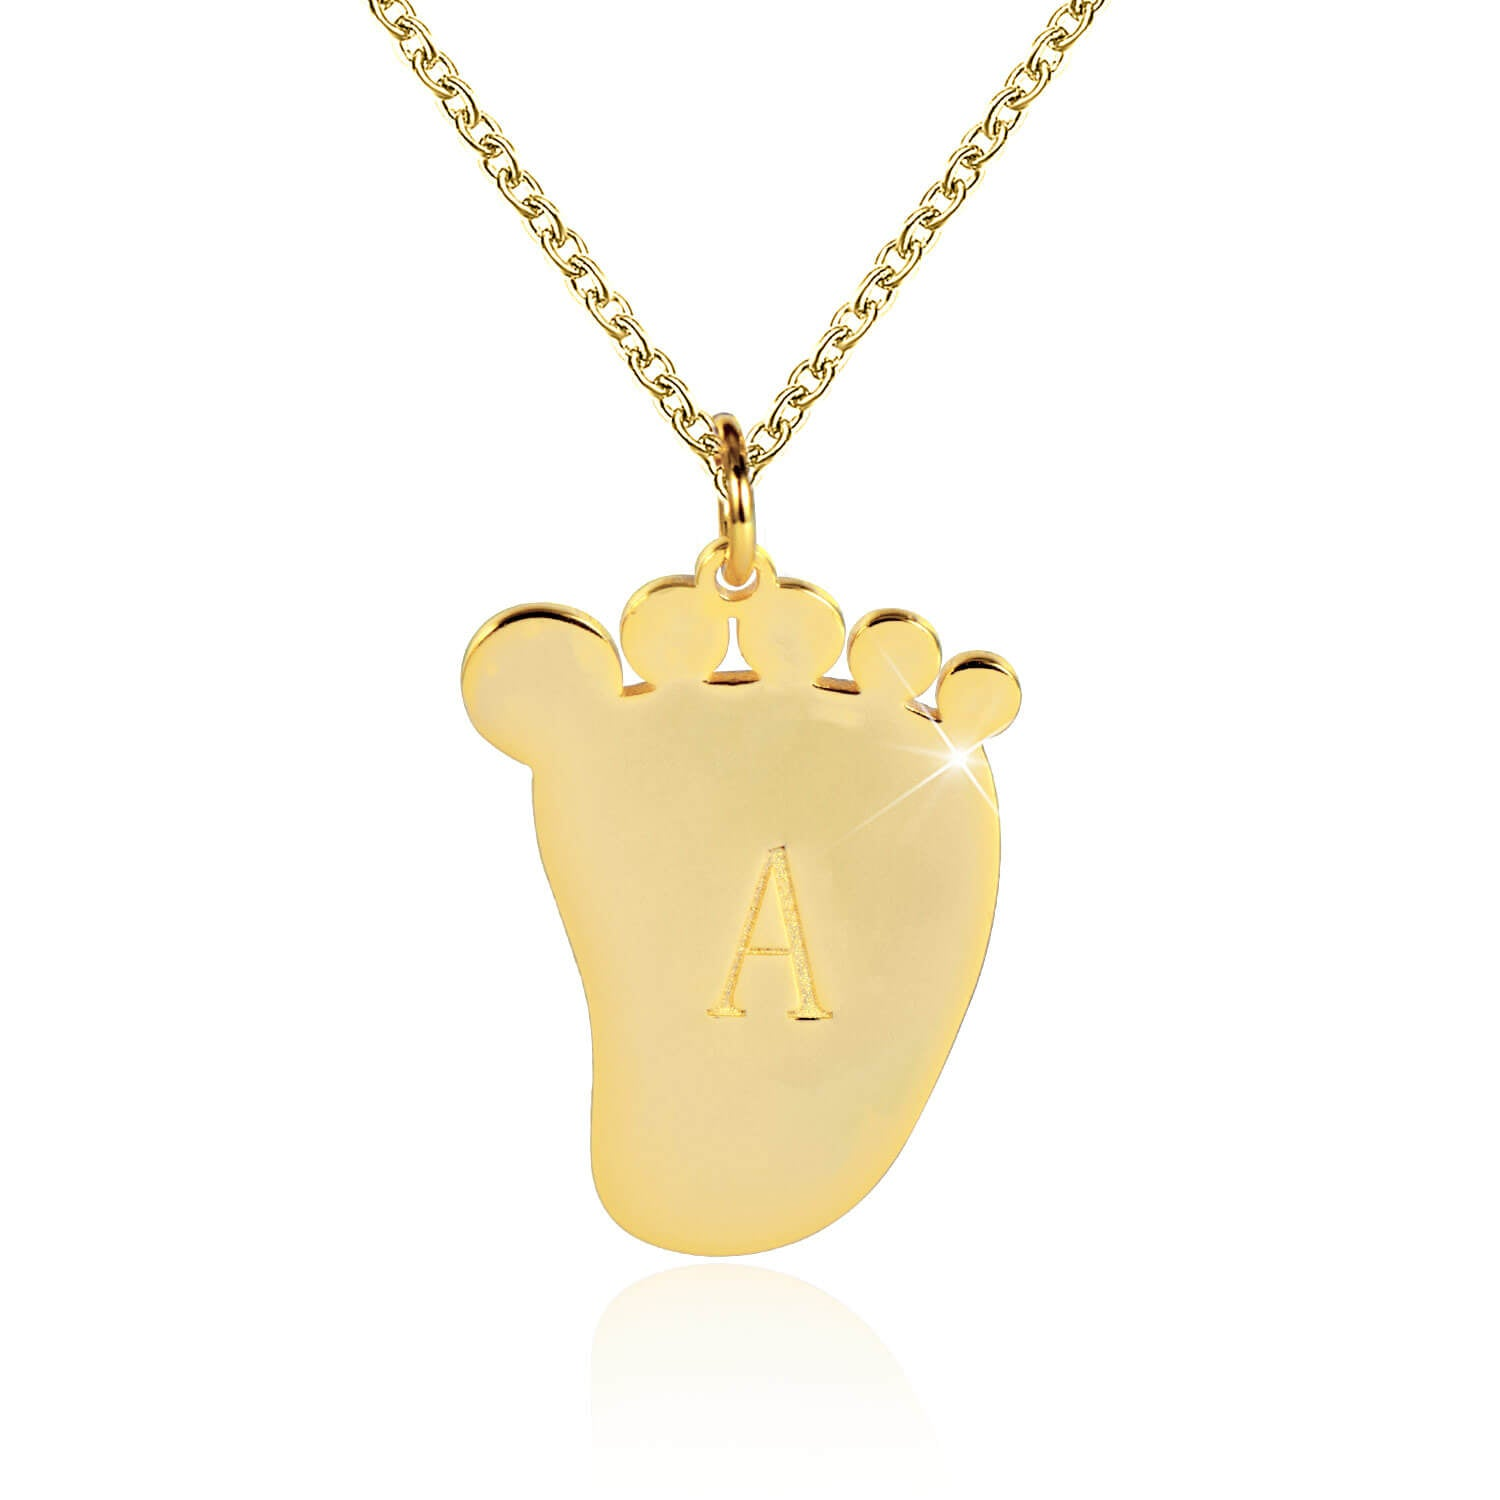 18K Gold Plated Baby Foot Initial Necklace